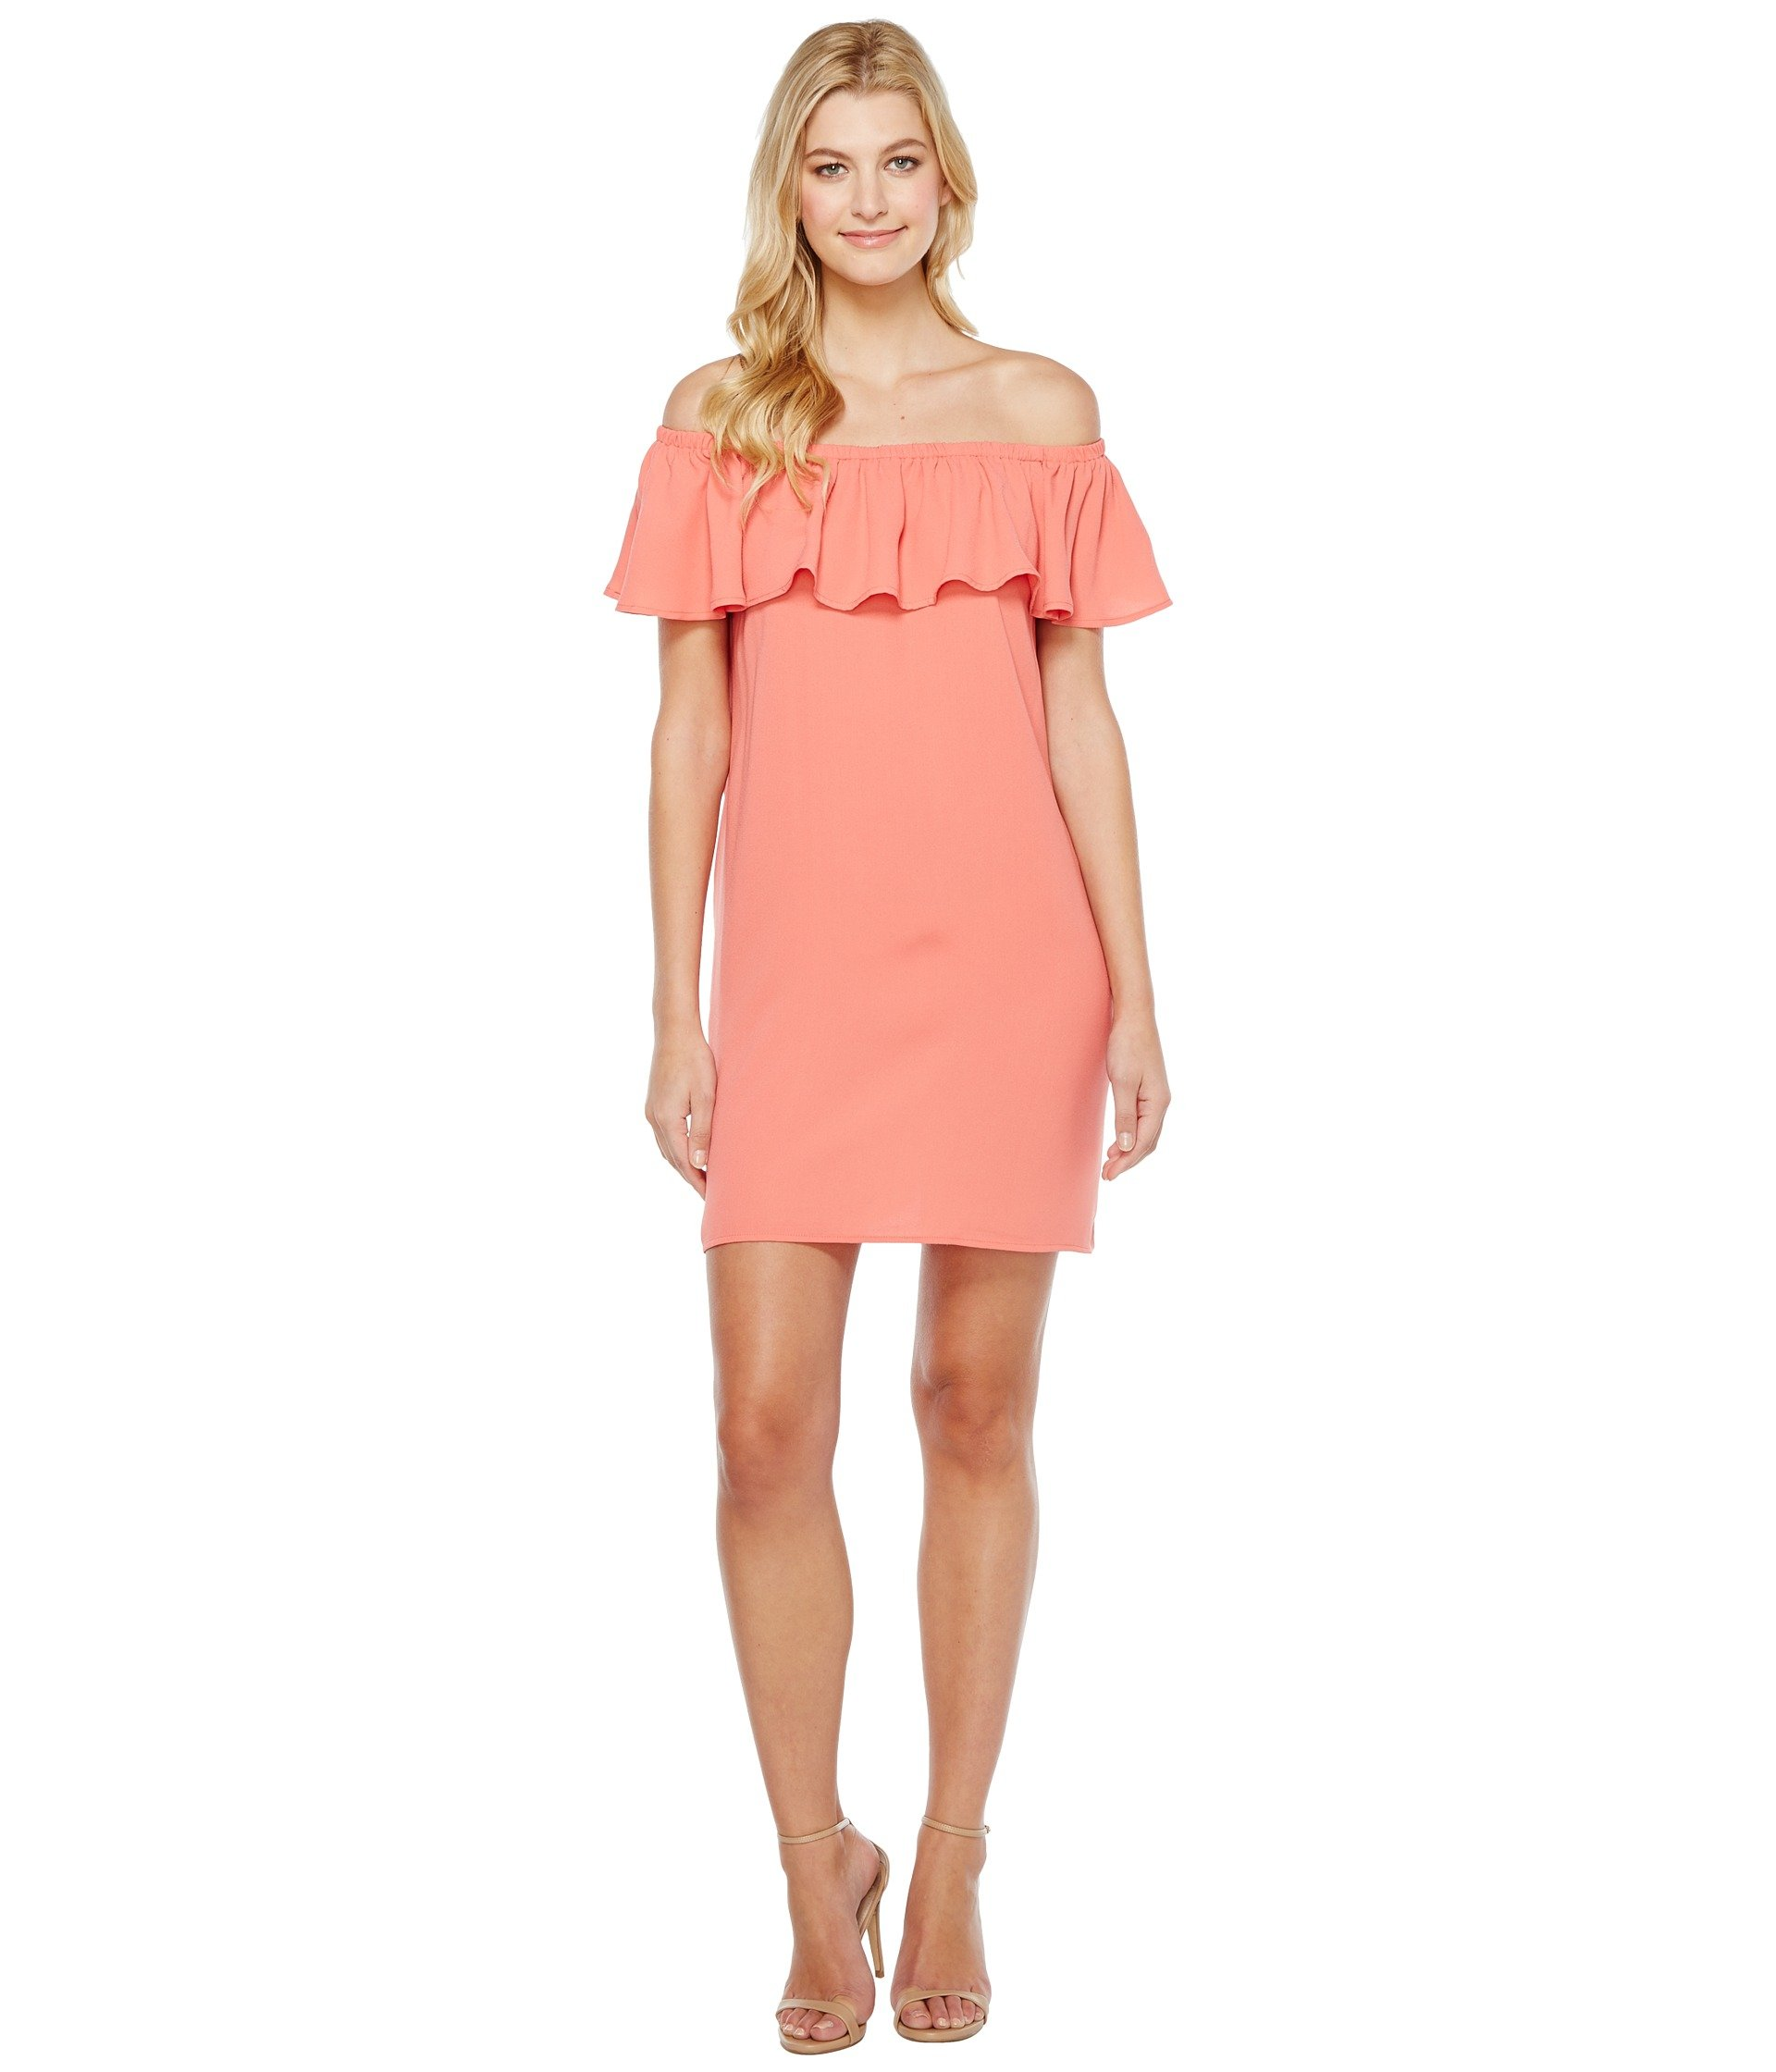 Candy Dress, Watermelon Julep